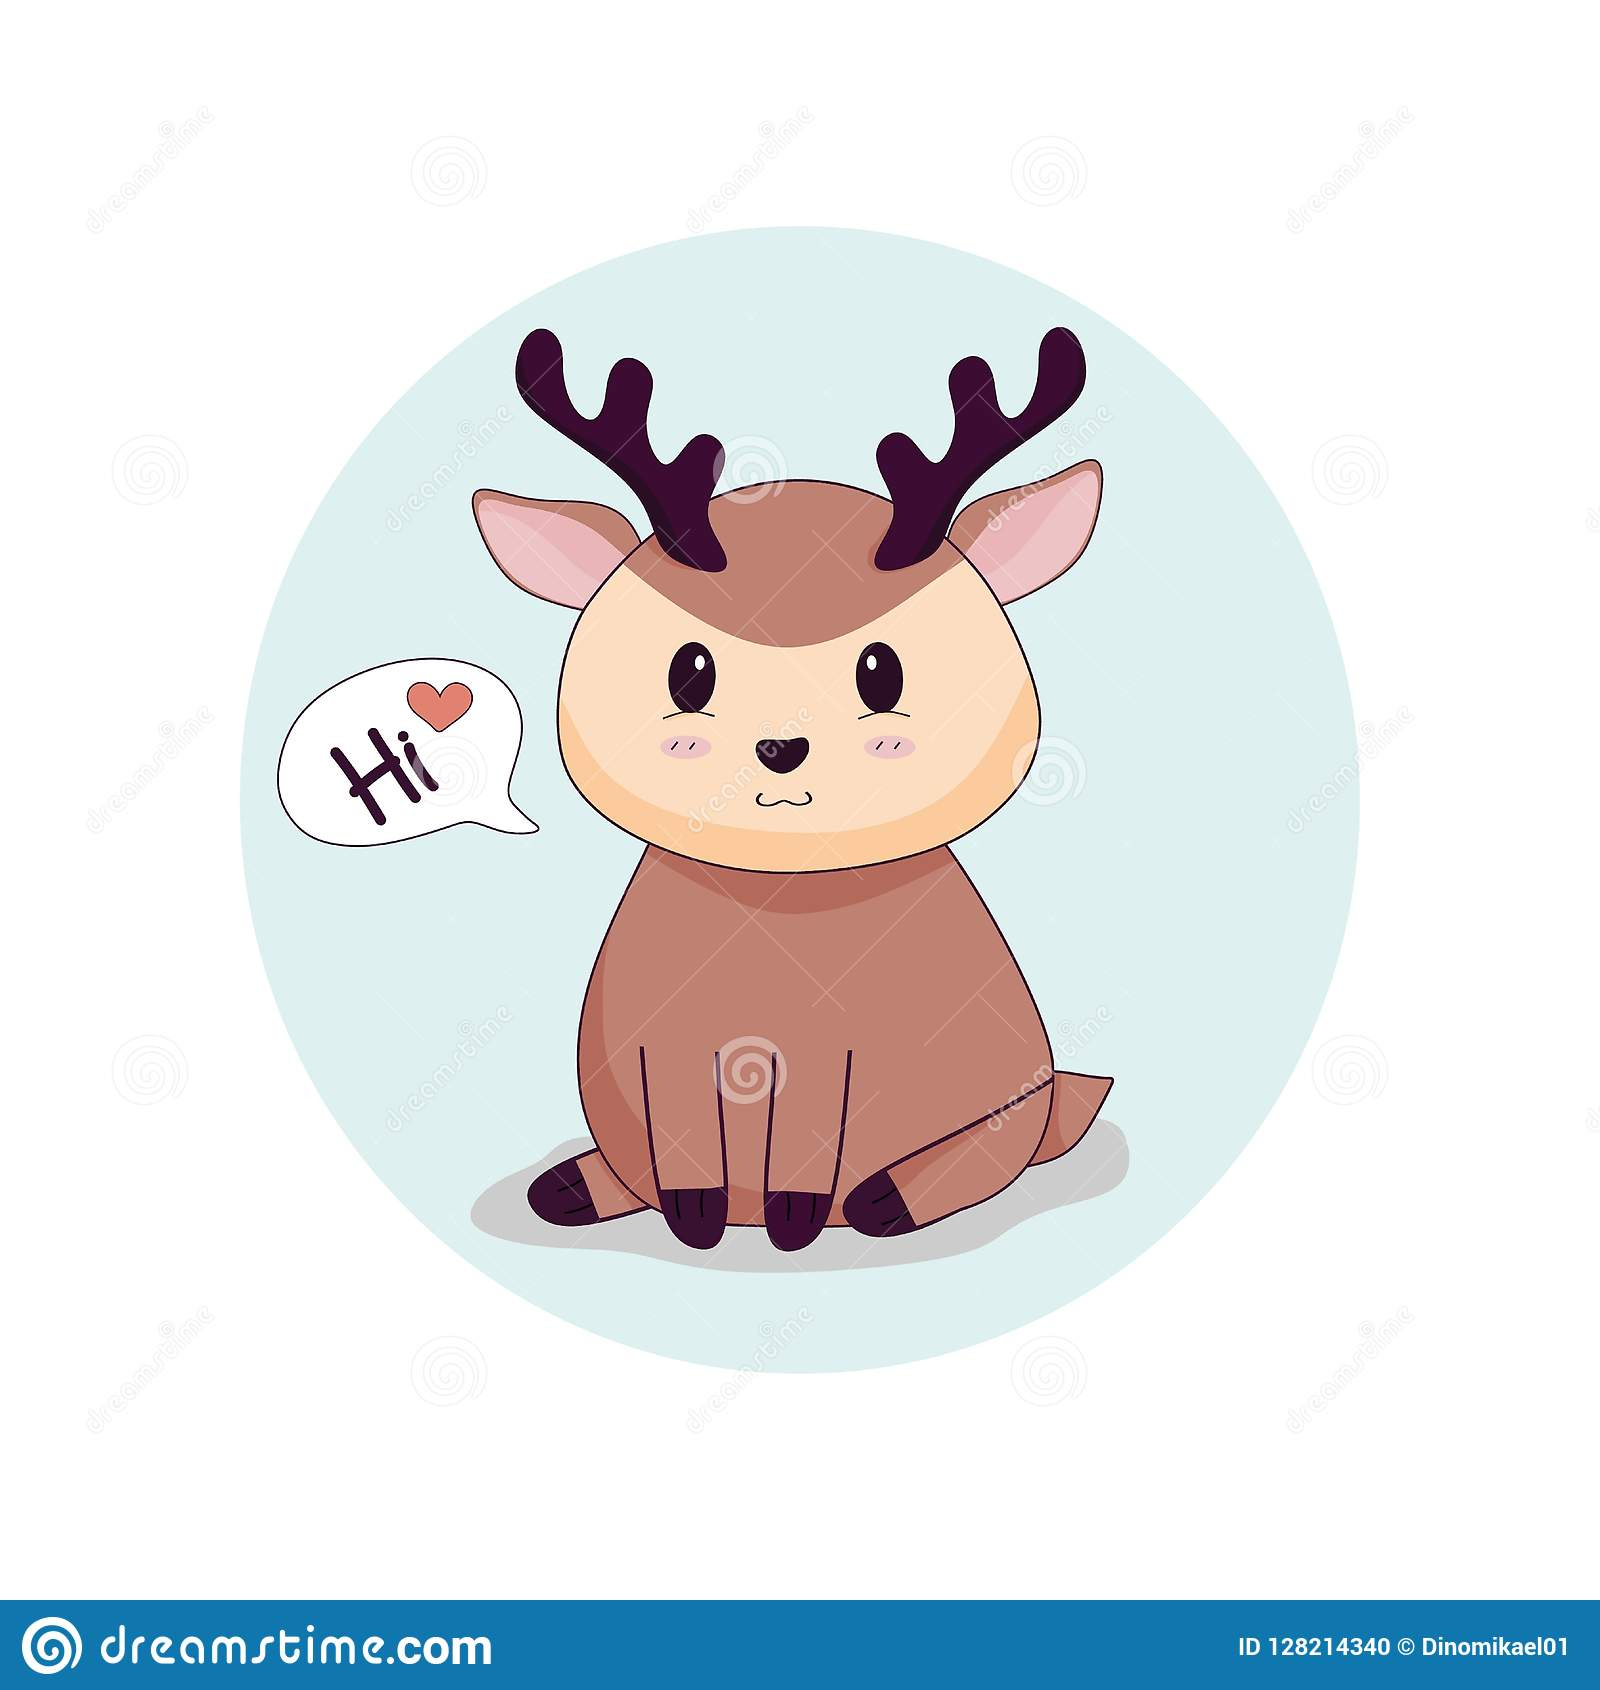 Cute Deer Graphic Say Hi With Love Stock Vector Illustration Of Icon Horn 128214340